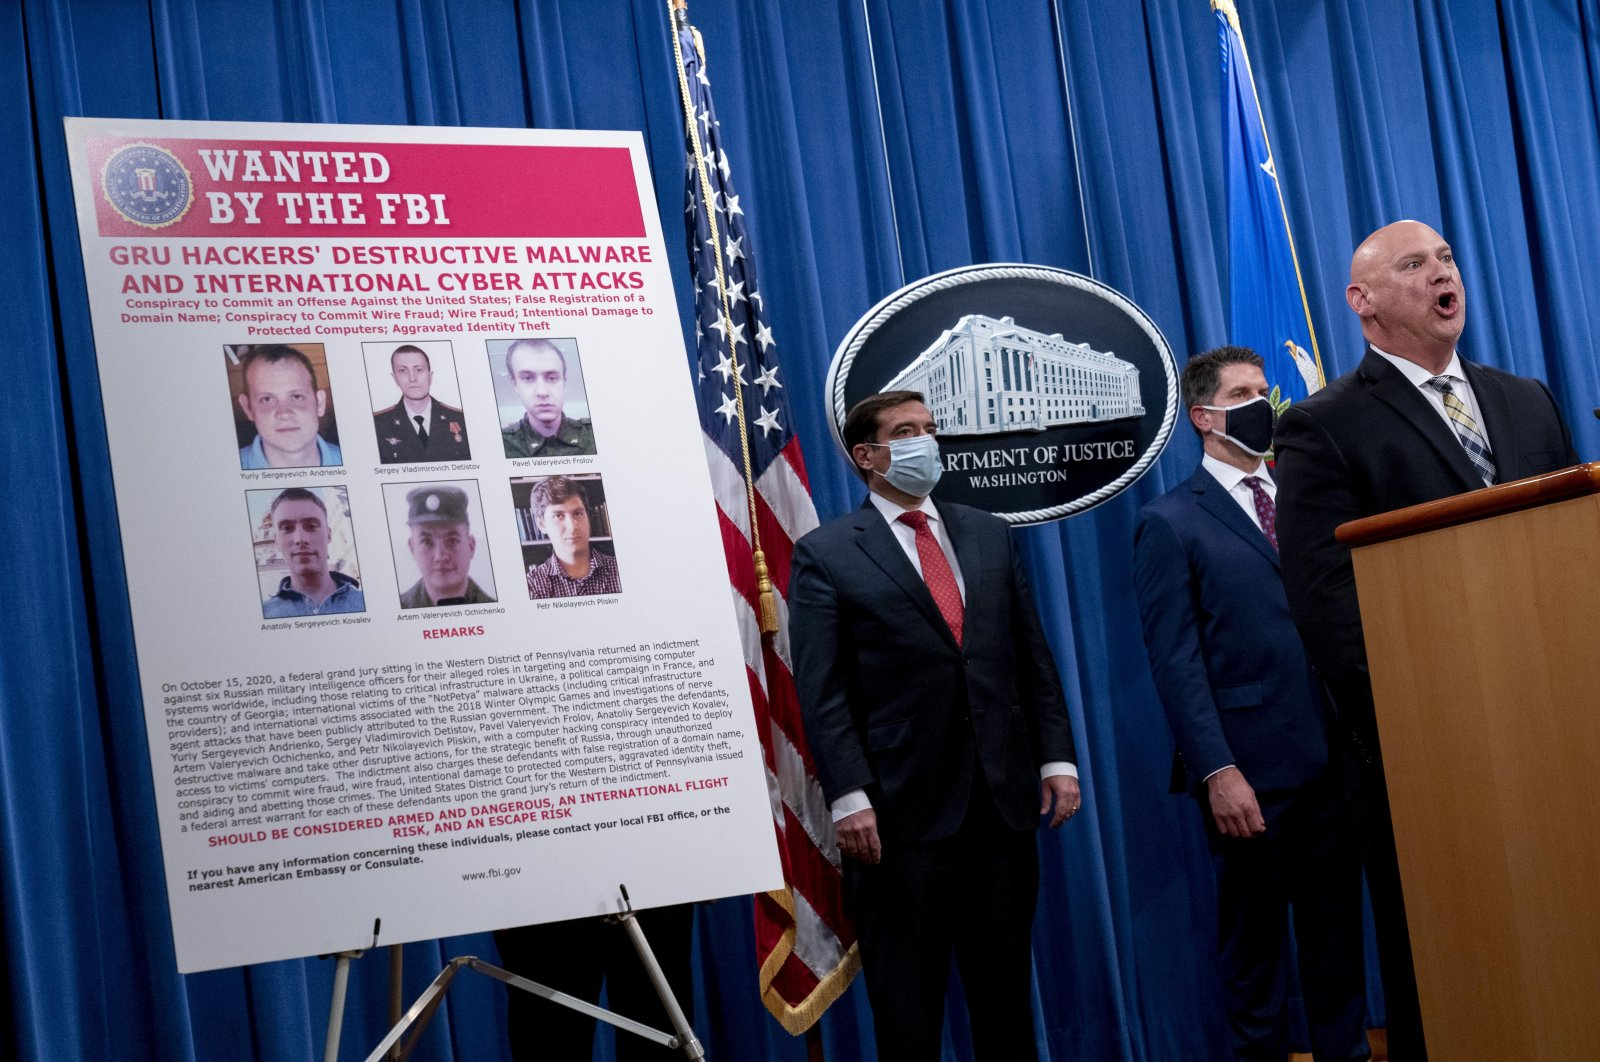 A poster showing six wanted Russian military intelligence officers is displayed as FBI Special Agent in Charge of the Pittsburgh field office Michael Christman (R) accompanied by Assistant Attorney General for the National Security Division John Demers (L) and FBI Deputy Director David Bowdich, (2nd R), speaks at a news conference at the Department of Justice, in Washington, DC, U.S., Oct. 19, 2020. (EPA Photo)